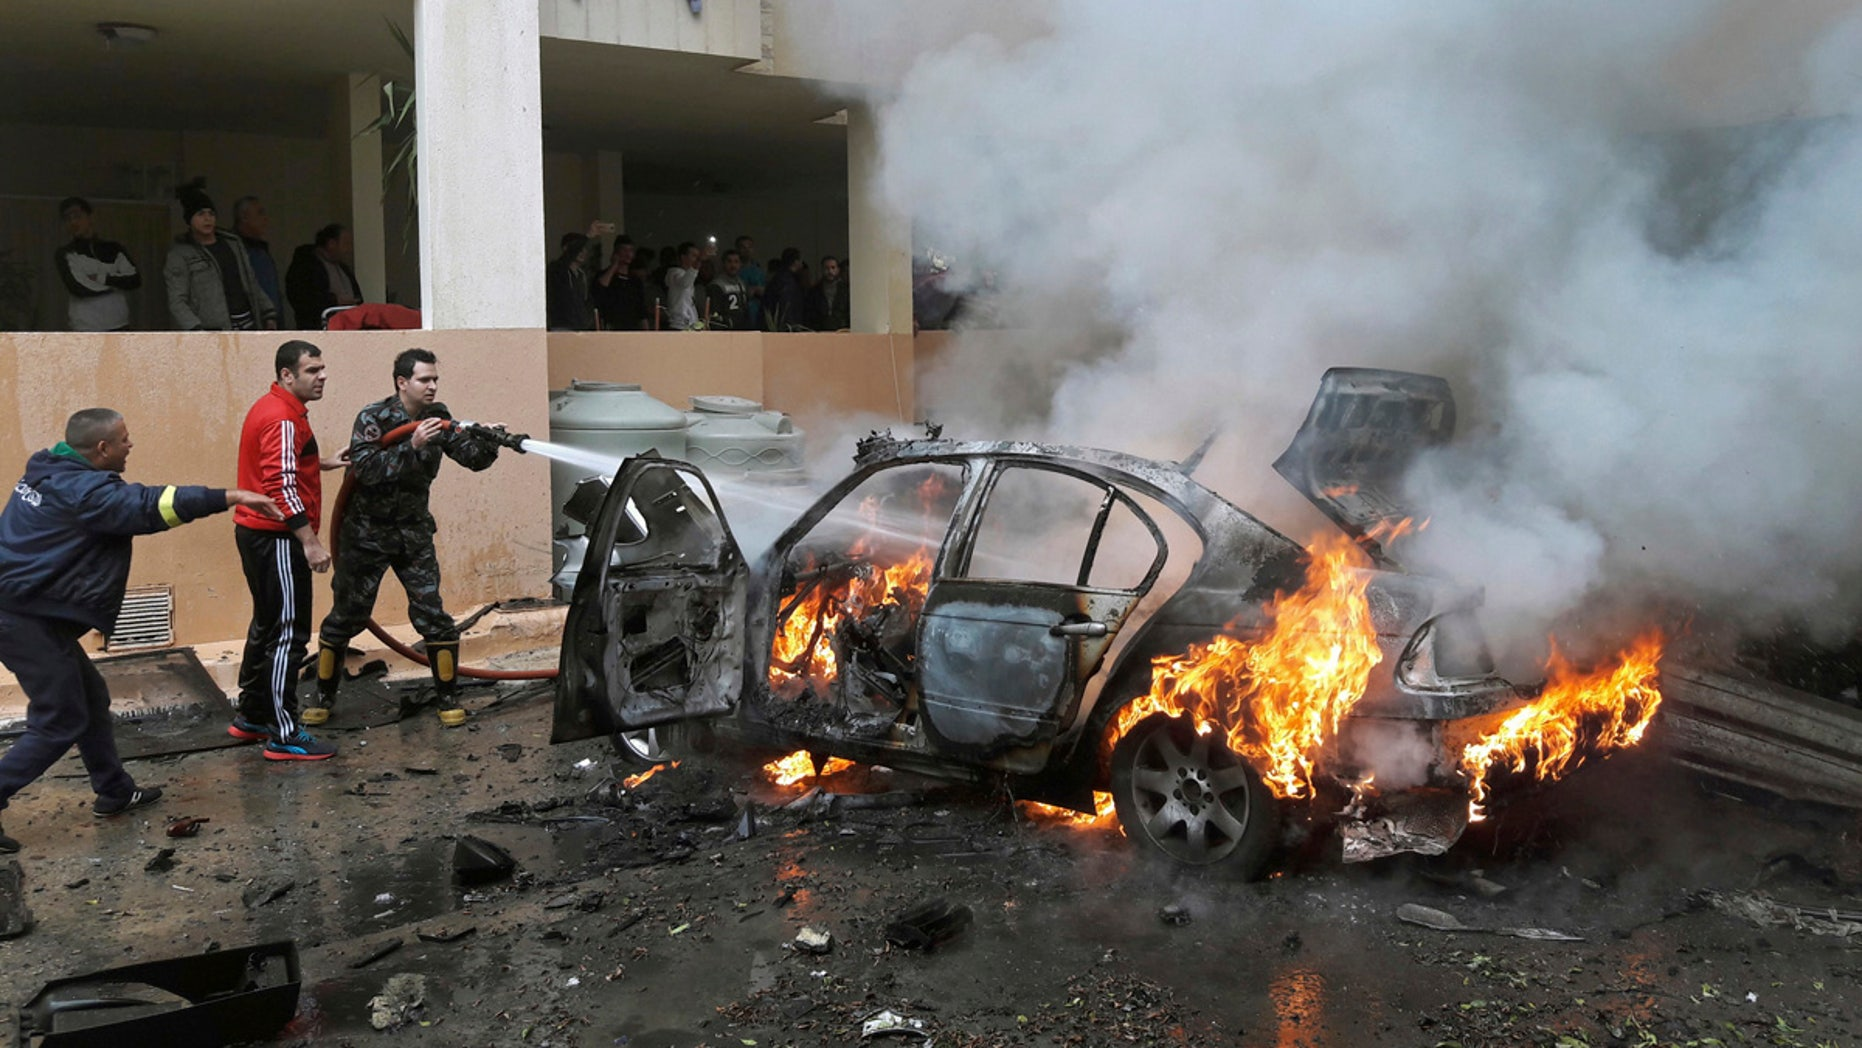 Firefighters extinguish a burning car that was destroyed in a bombing in the southern port city of Sidon, Lebanon, Sunday, Jan. 14, 2018